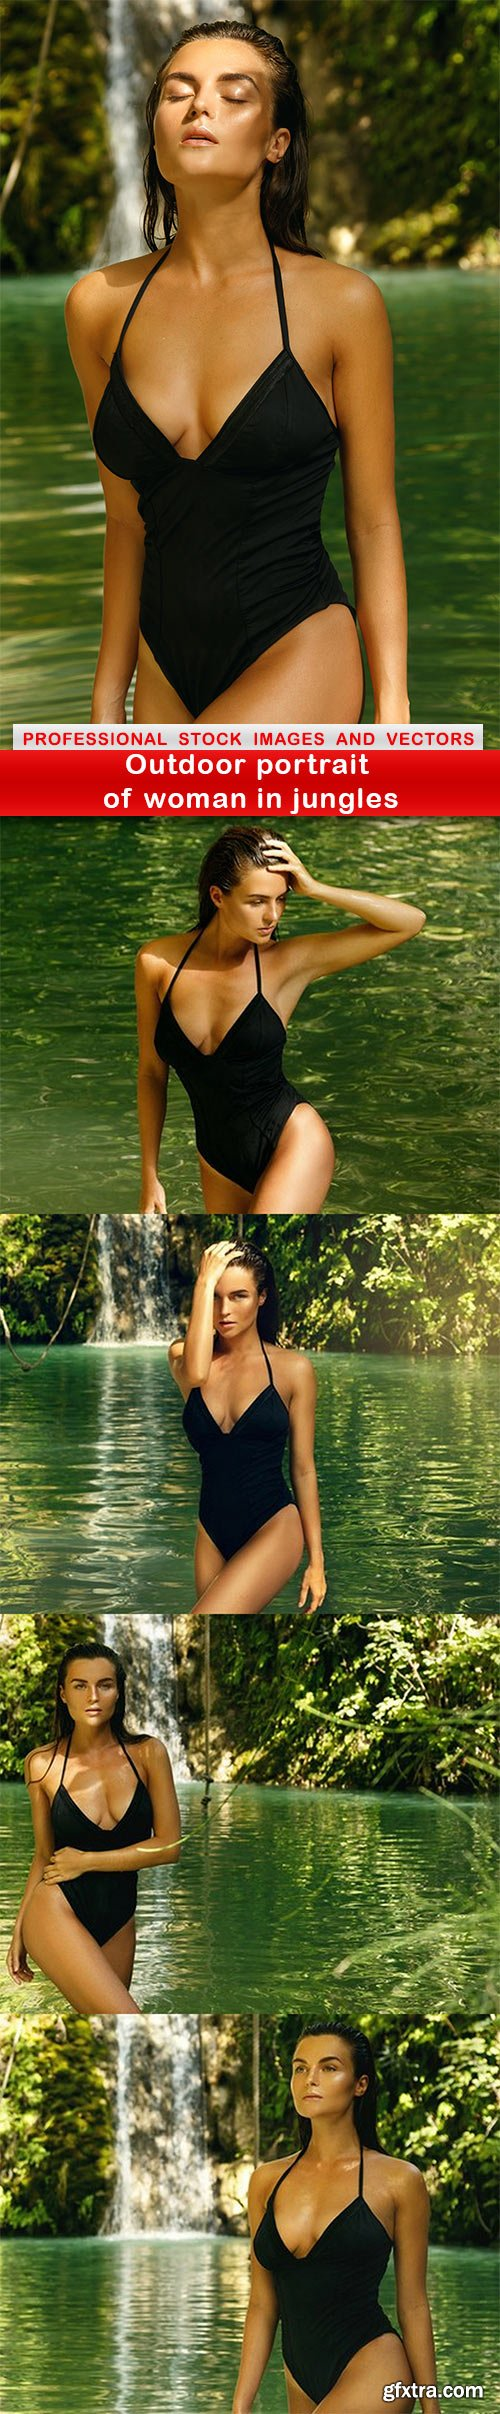 Outdoor portrait of woman in jungles - 5 UHQ JPEG